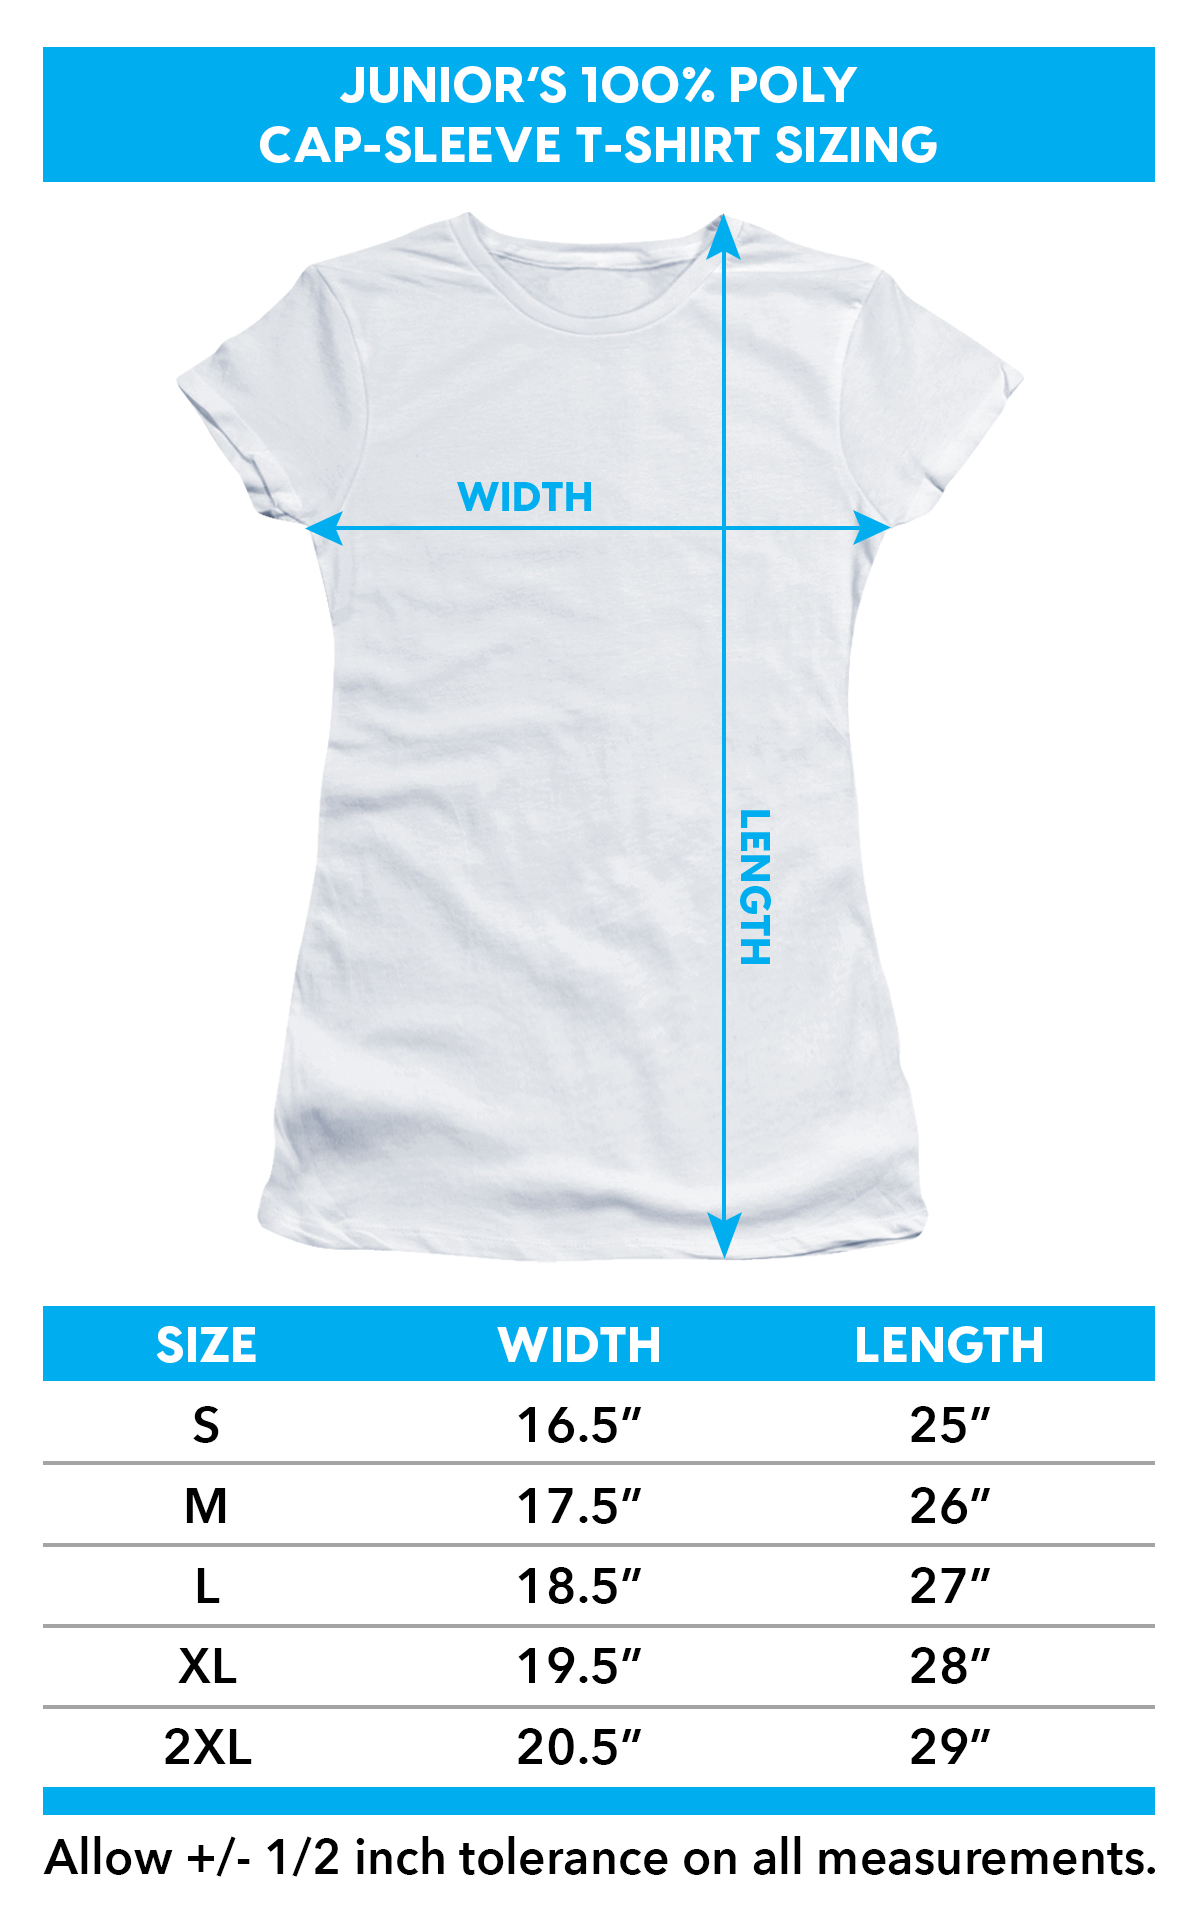 Sizing Chart for Anne Stokes Girls T-Shirt - Sublimated Dragon's Lair